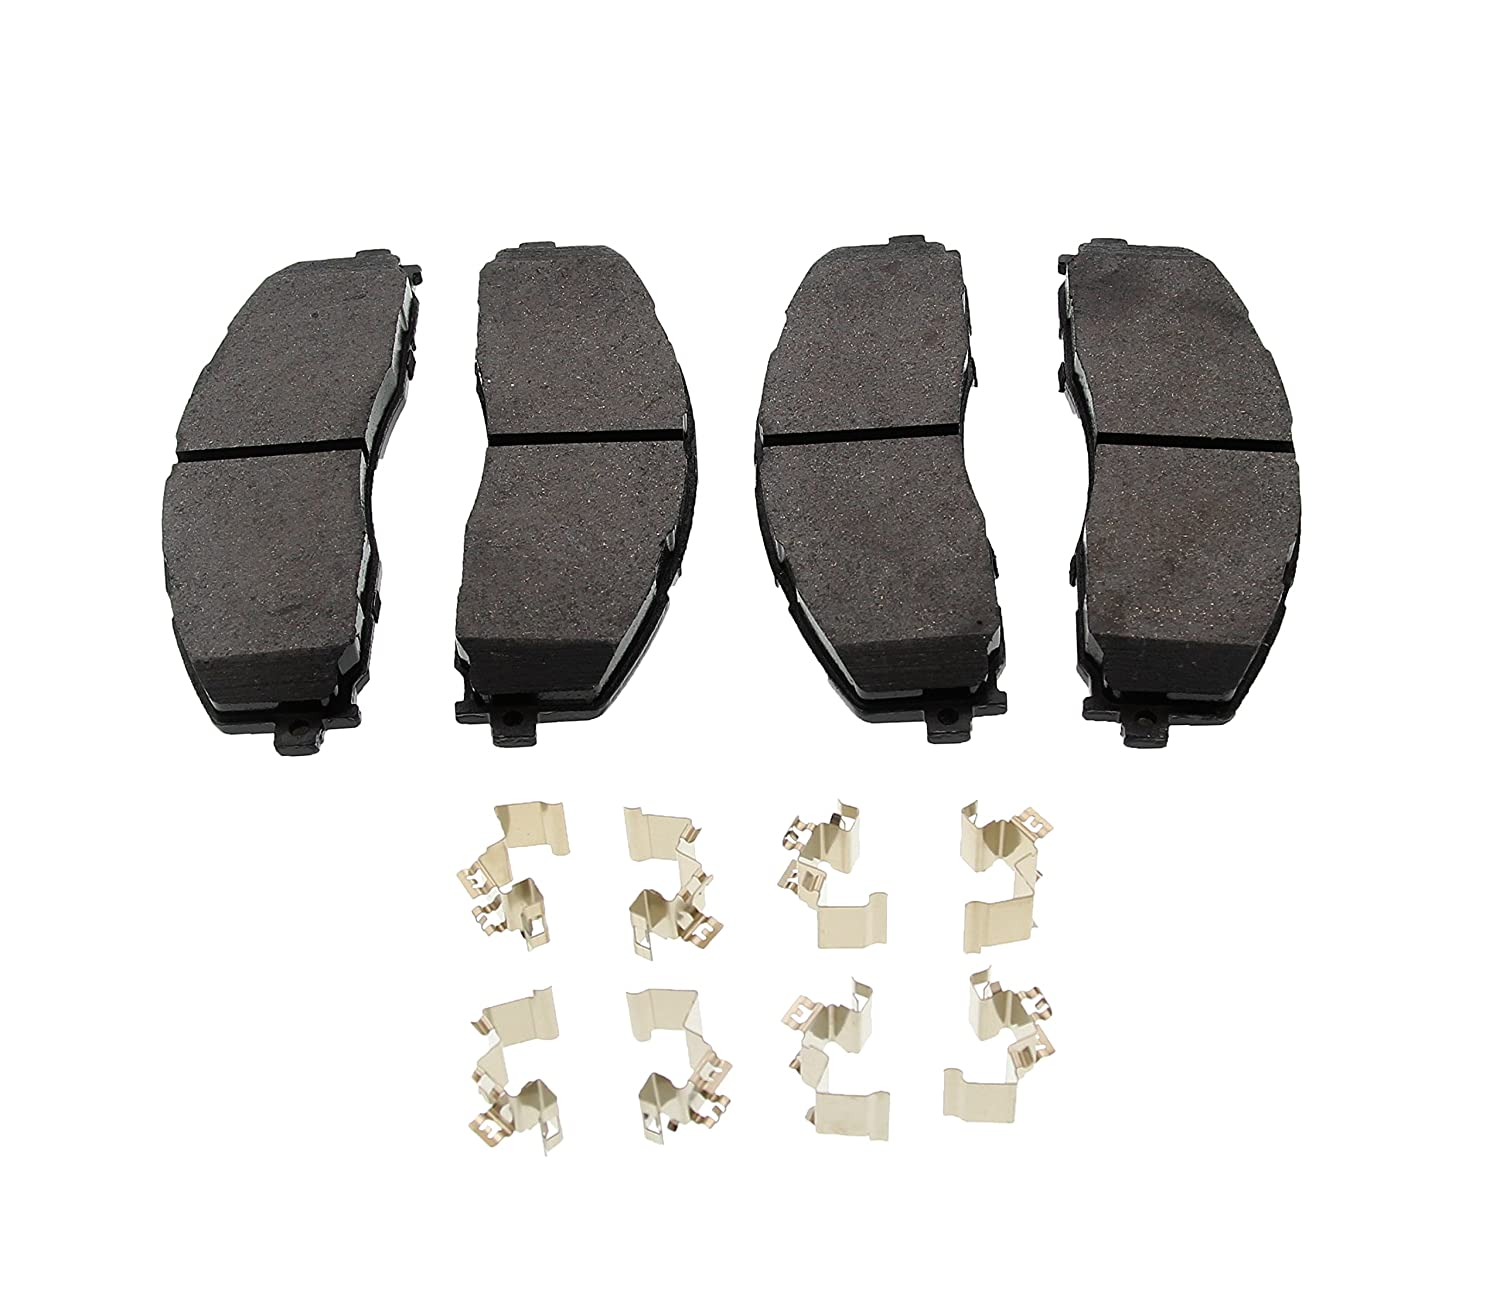 Race Driven Super Duty Premium Front Brake Pads OEM DC3Z-2001-E for Ford F250 F350 F 250 350